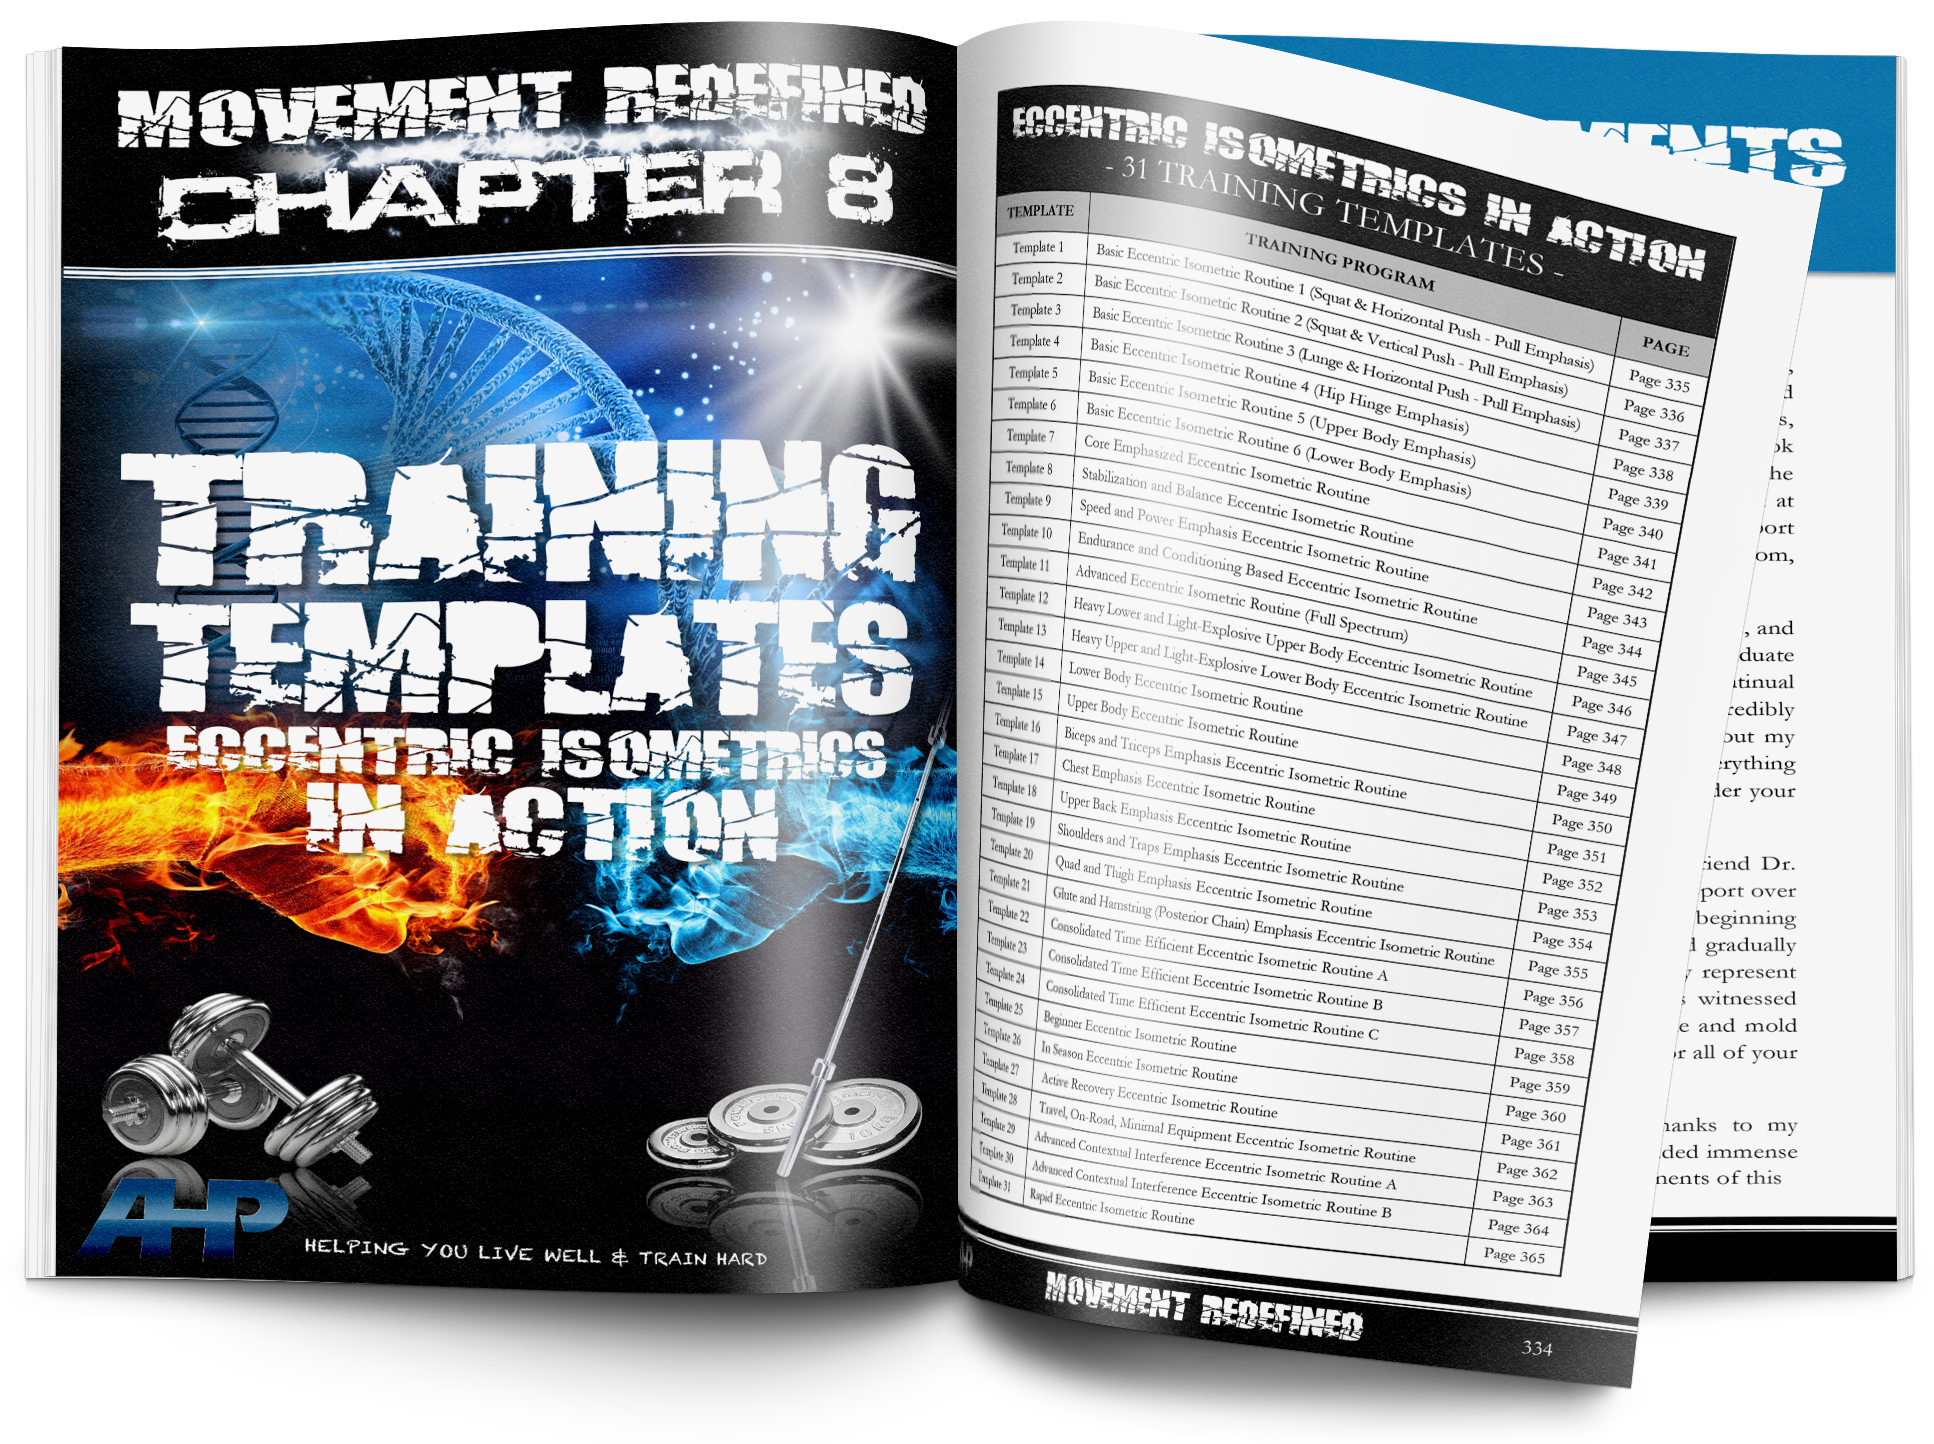 Training Programs | 30+ Eccentric Isometric Routines  + Click to Enlarge